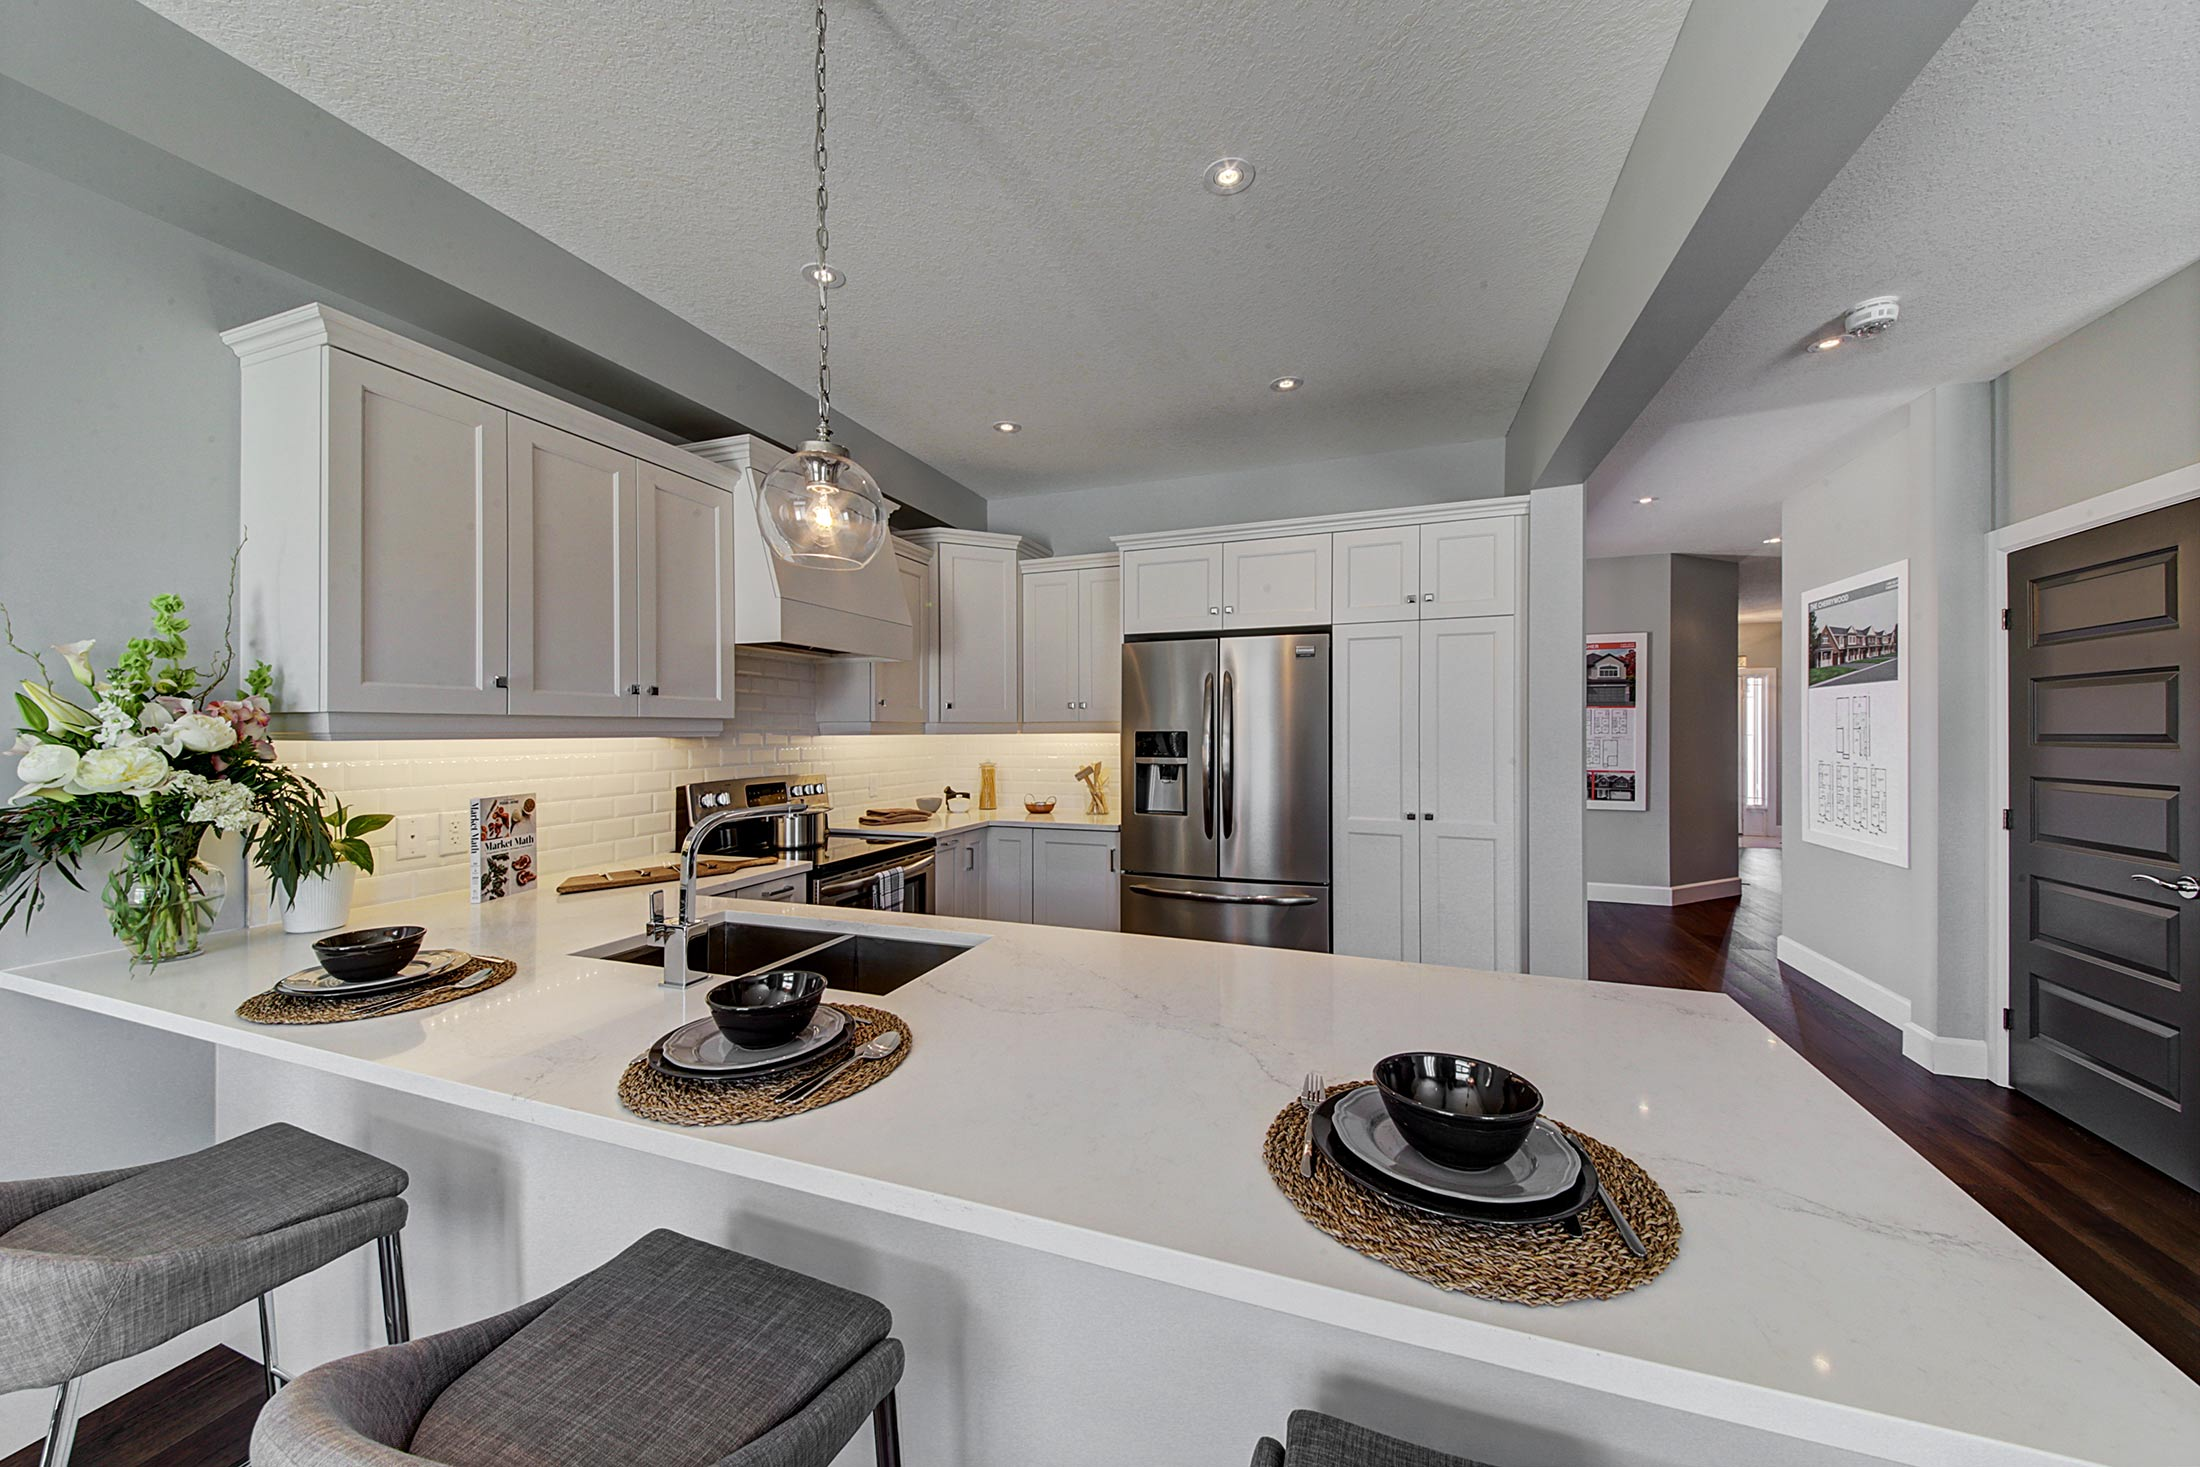 Granite & Quartz Counters   Add timeless beauty to your kitchen and bathrooms with our granite and quartz counters. Not only are these surfaces low maintenance and long lasting, they also create a luxurious high-end space